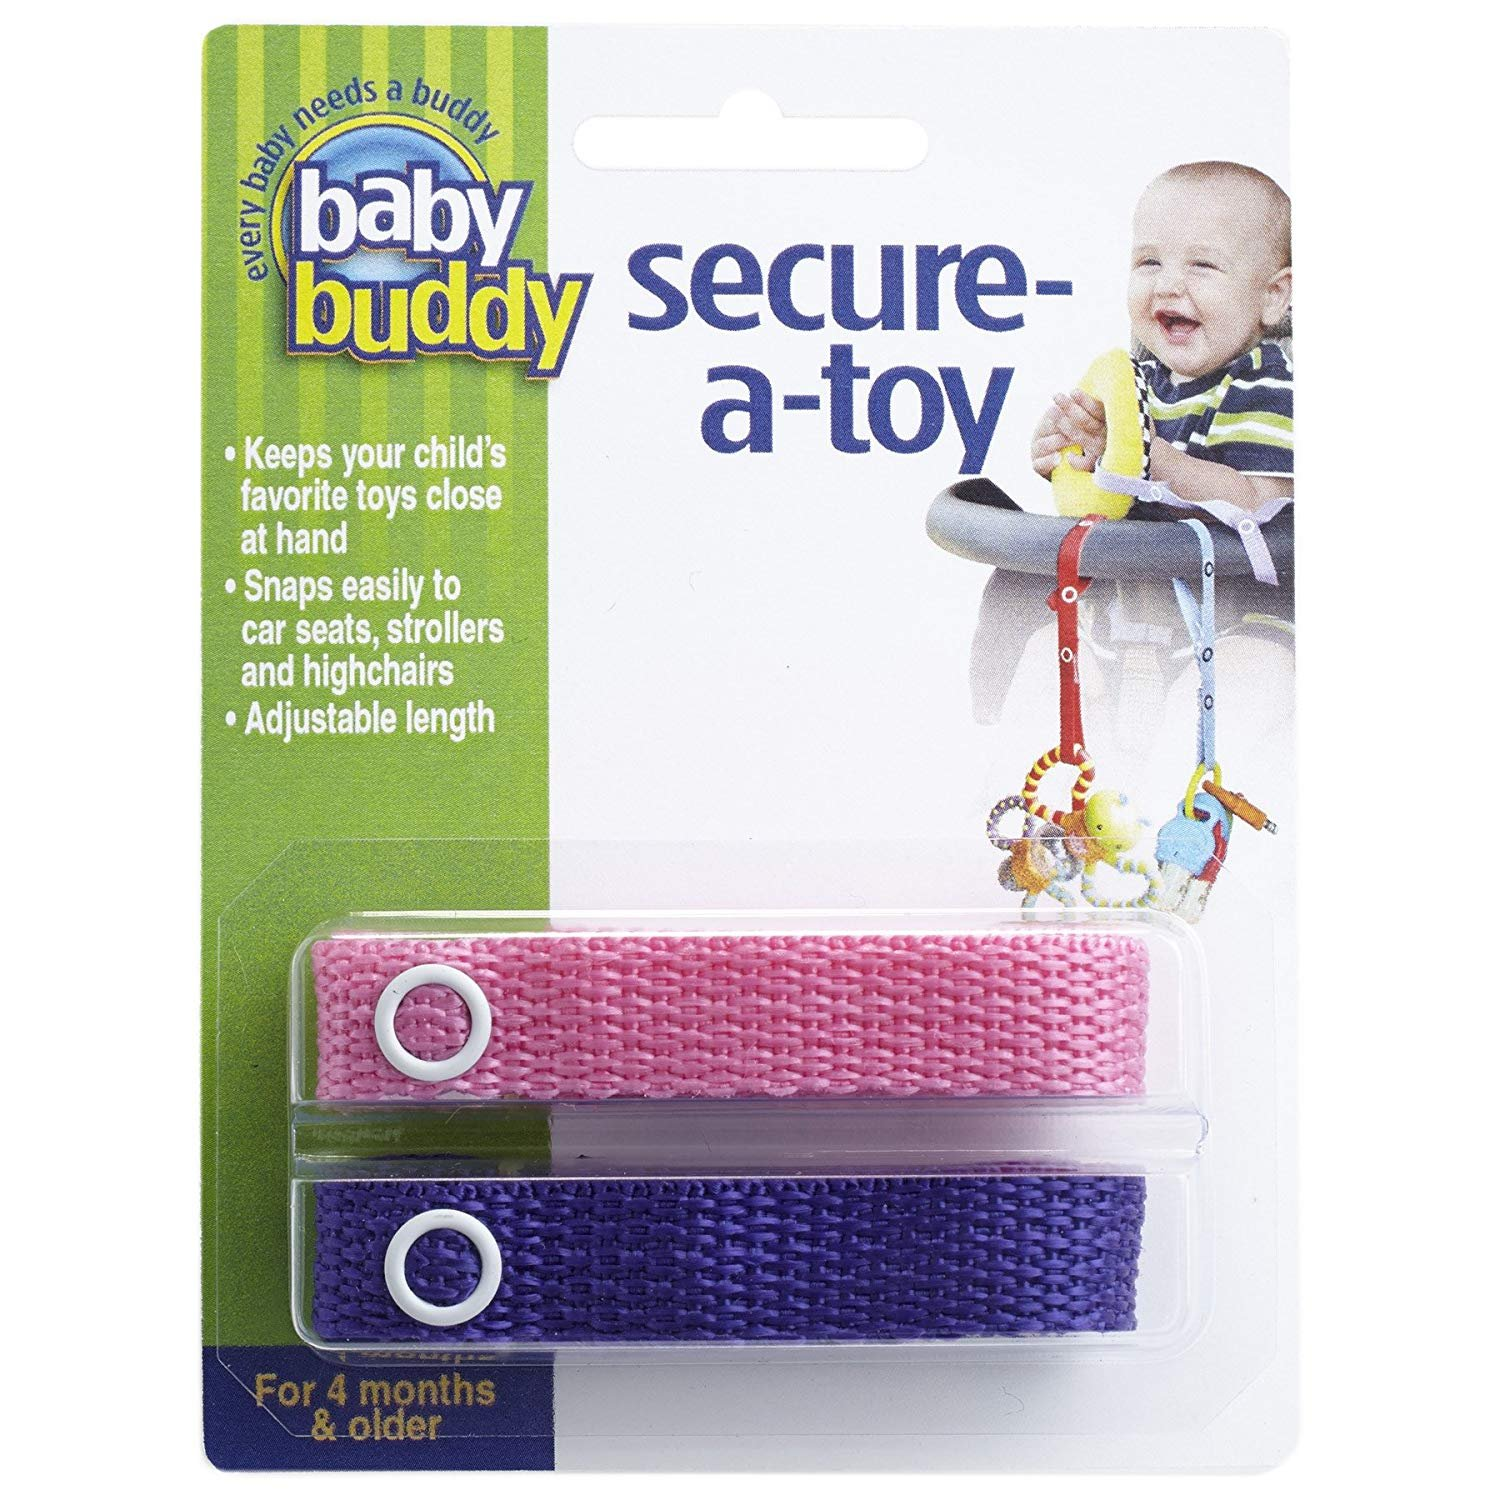 Baby Buddy Secure-A-Toy, Navy/Blue, 2-Pack Compac Industries 00156NB